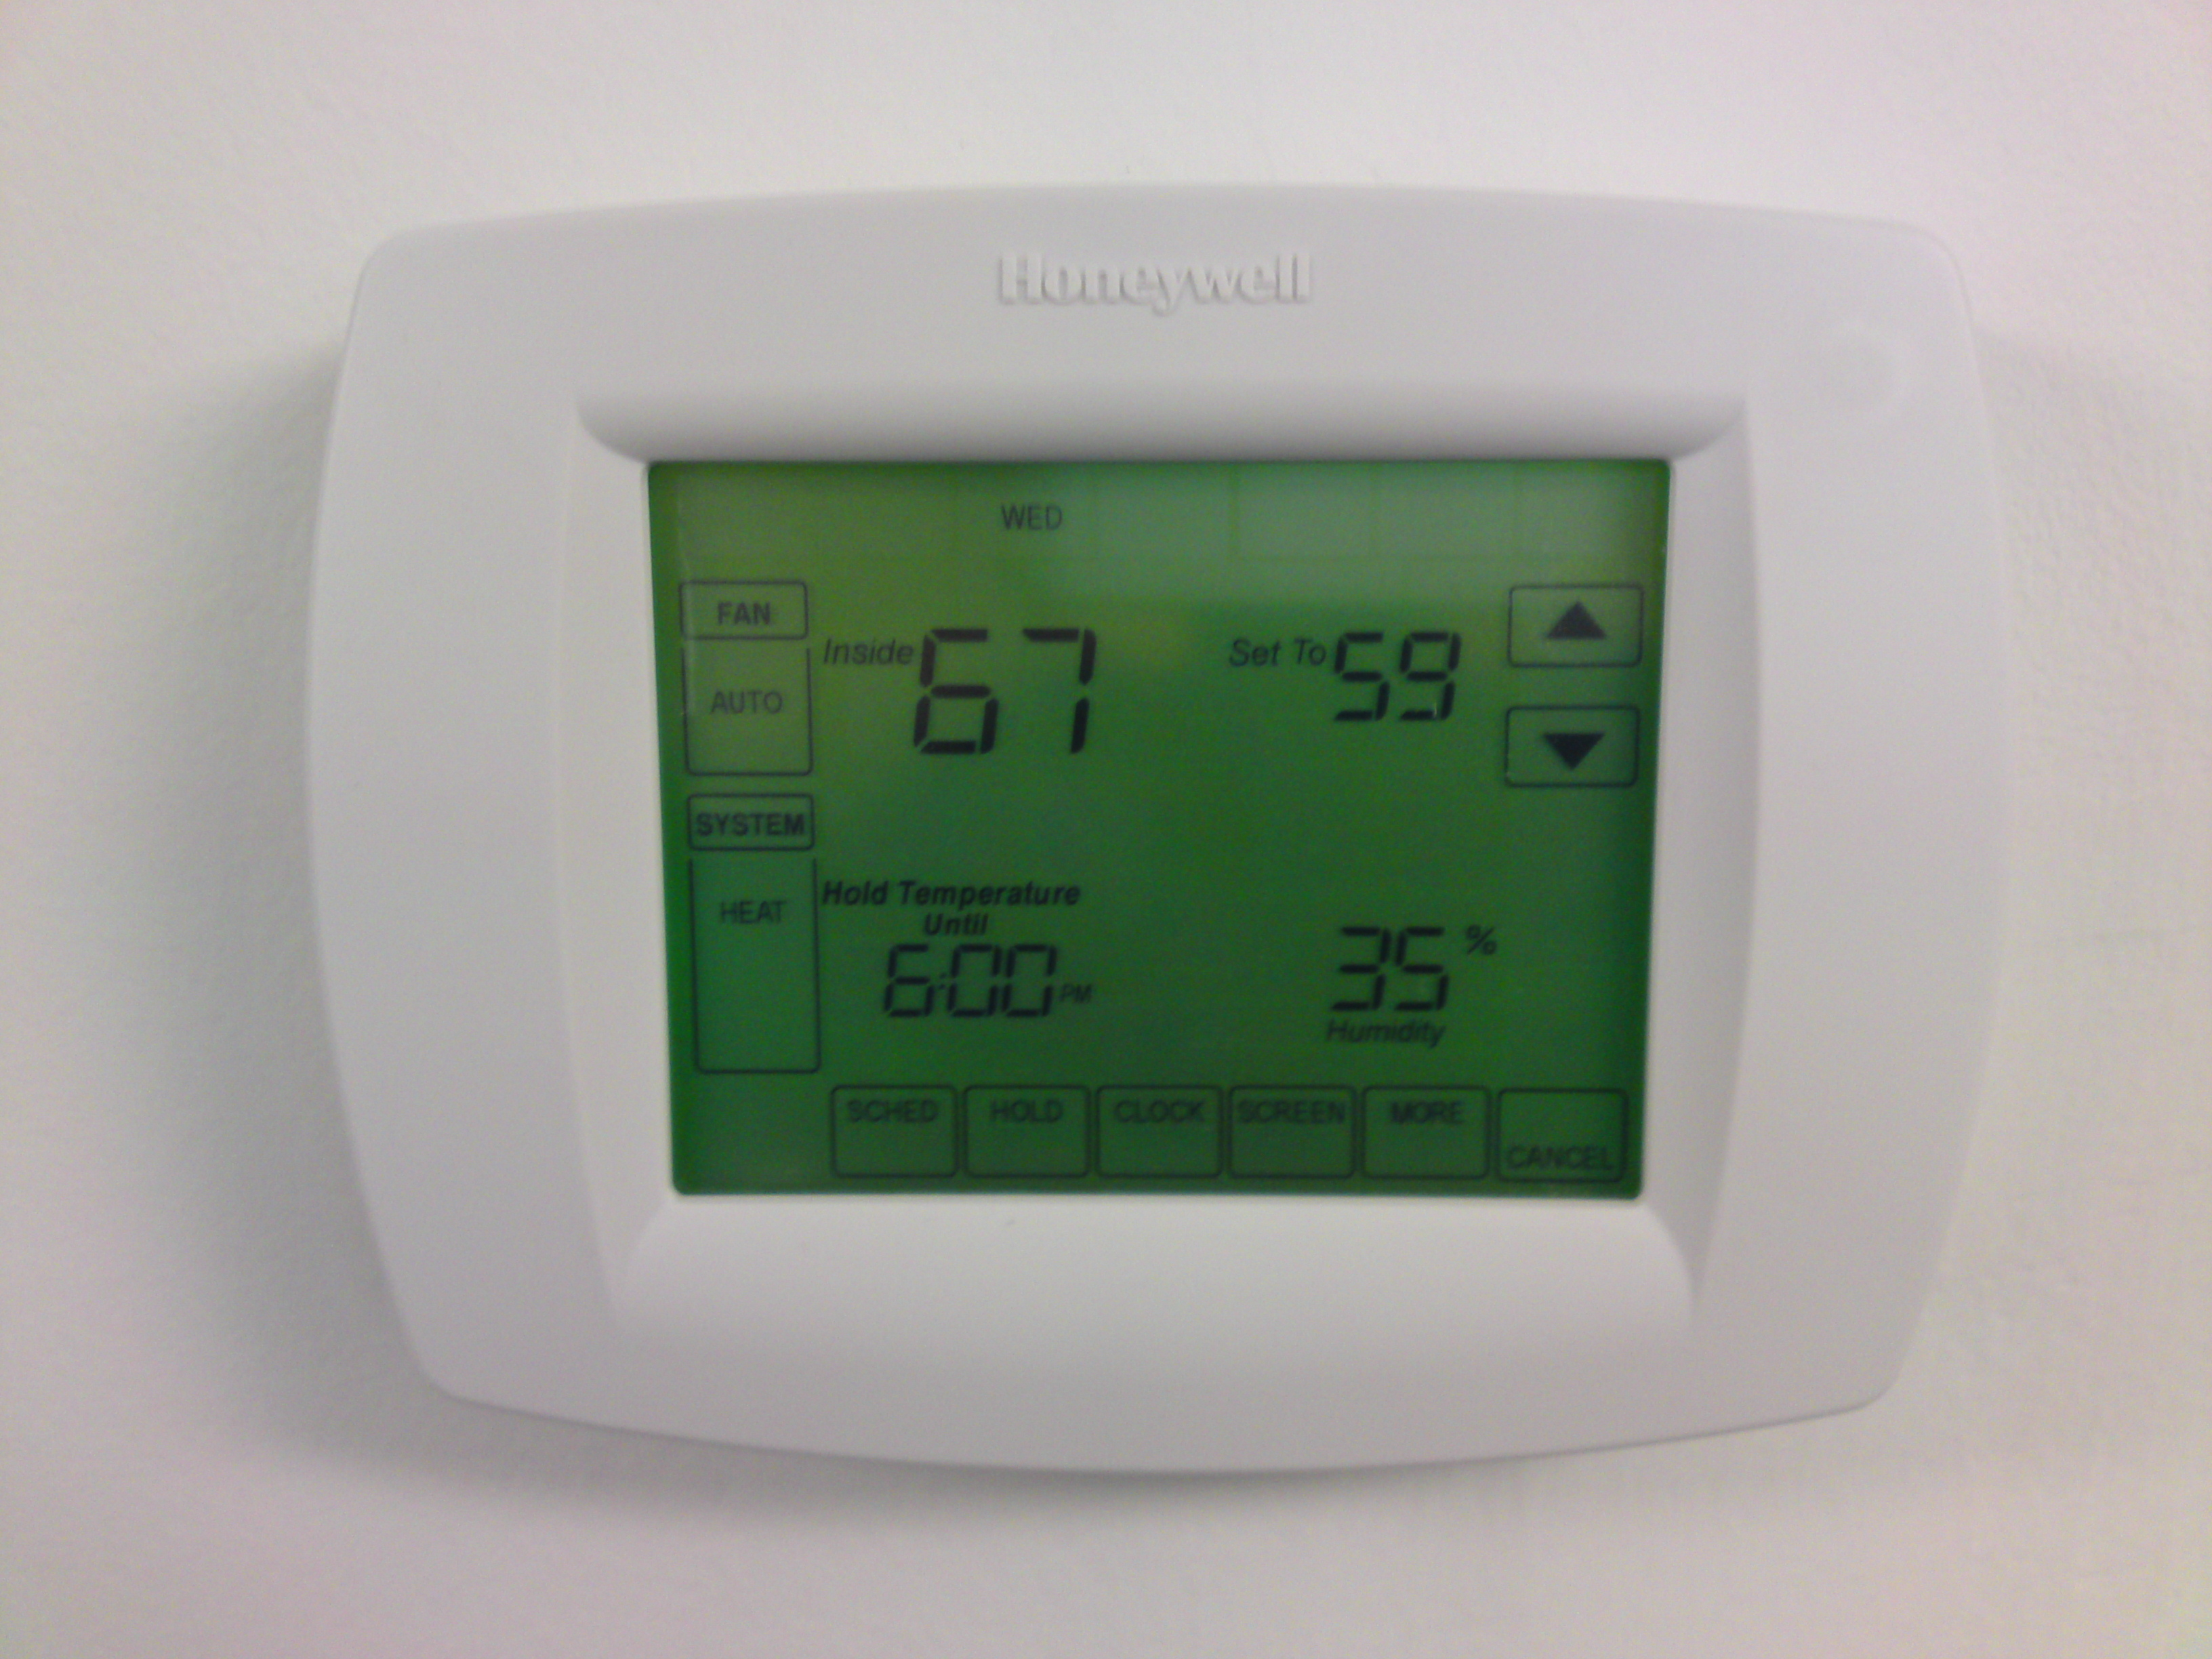 untitled 0 rh shenservice com american standard digital thermostat troubleshooting American Standard Programmable Thermostat